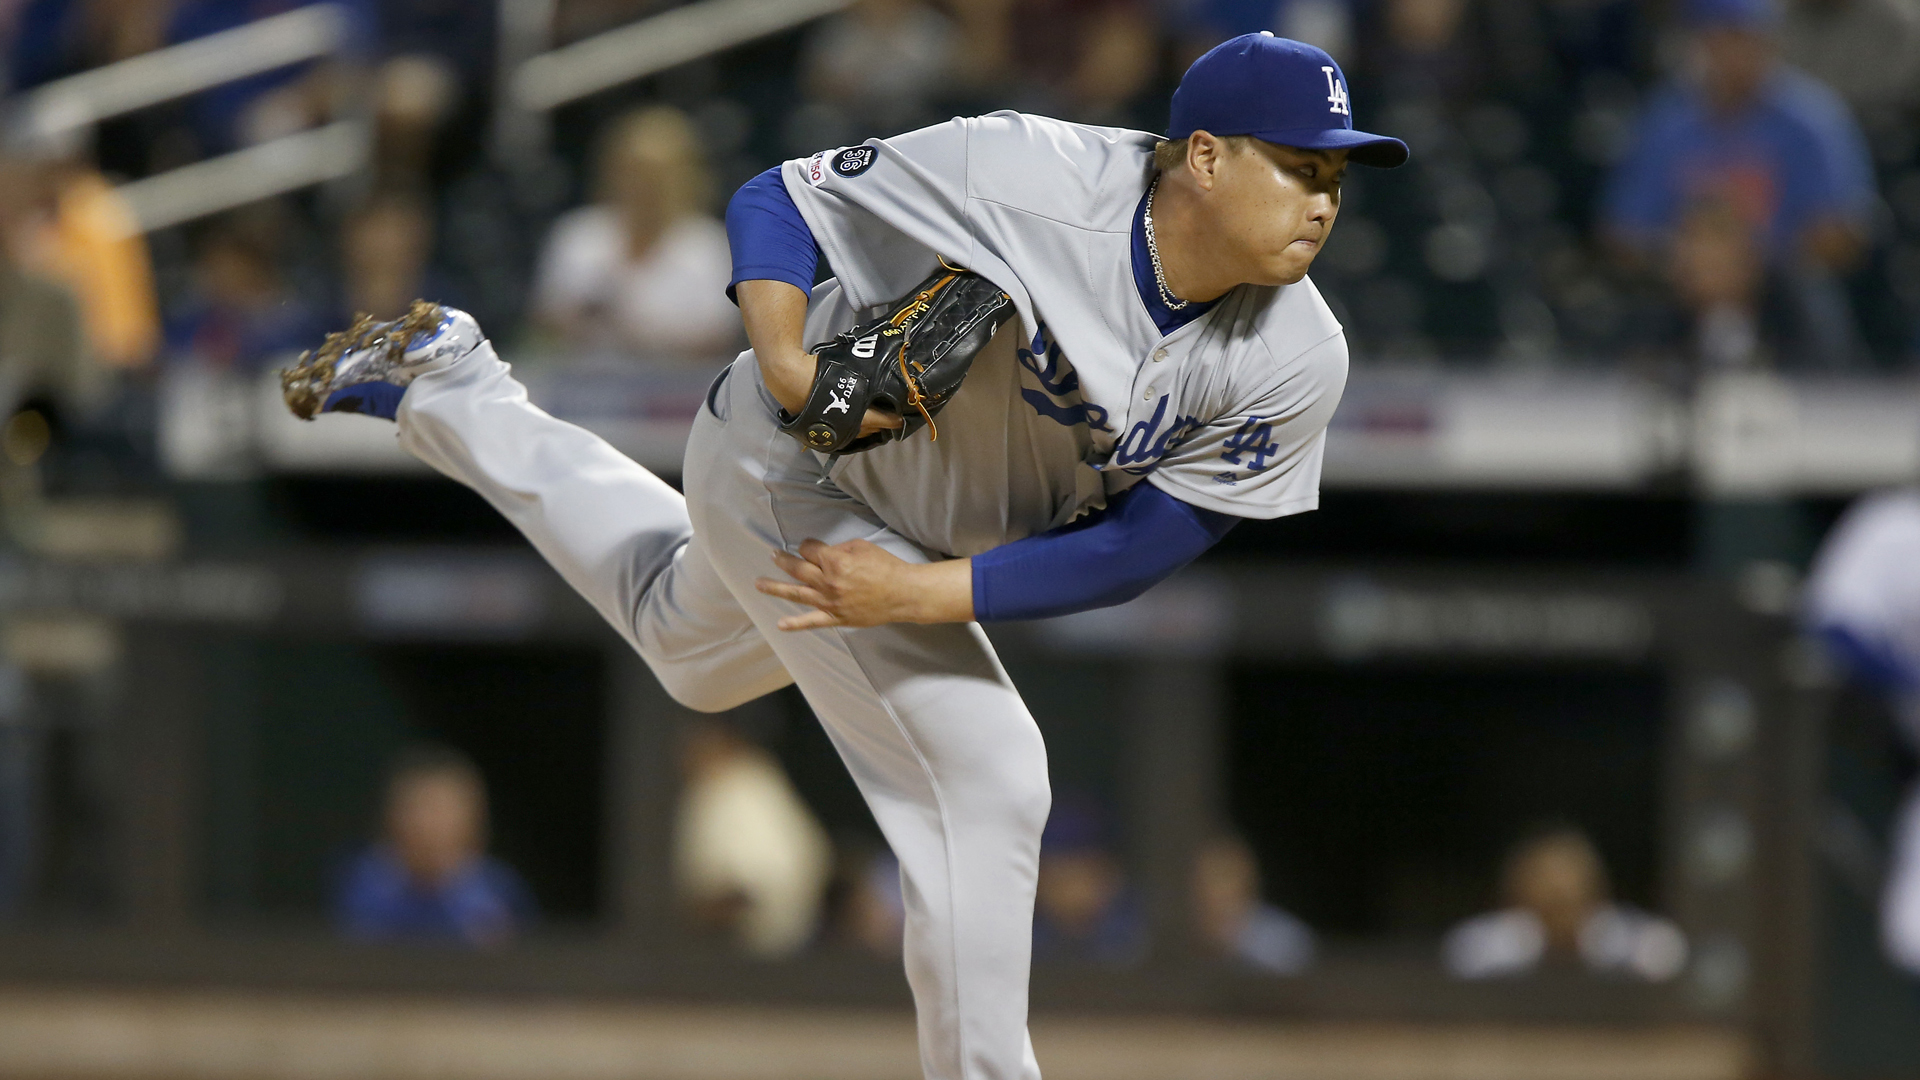 Hyun-Jin Ryu #99 of the Los Angeles Dodgers pitches in the first inning against the New York Mets at Citi Field on September 14, 2019 in New York City. (Credit: Jim McIsaac/Getty Images)